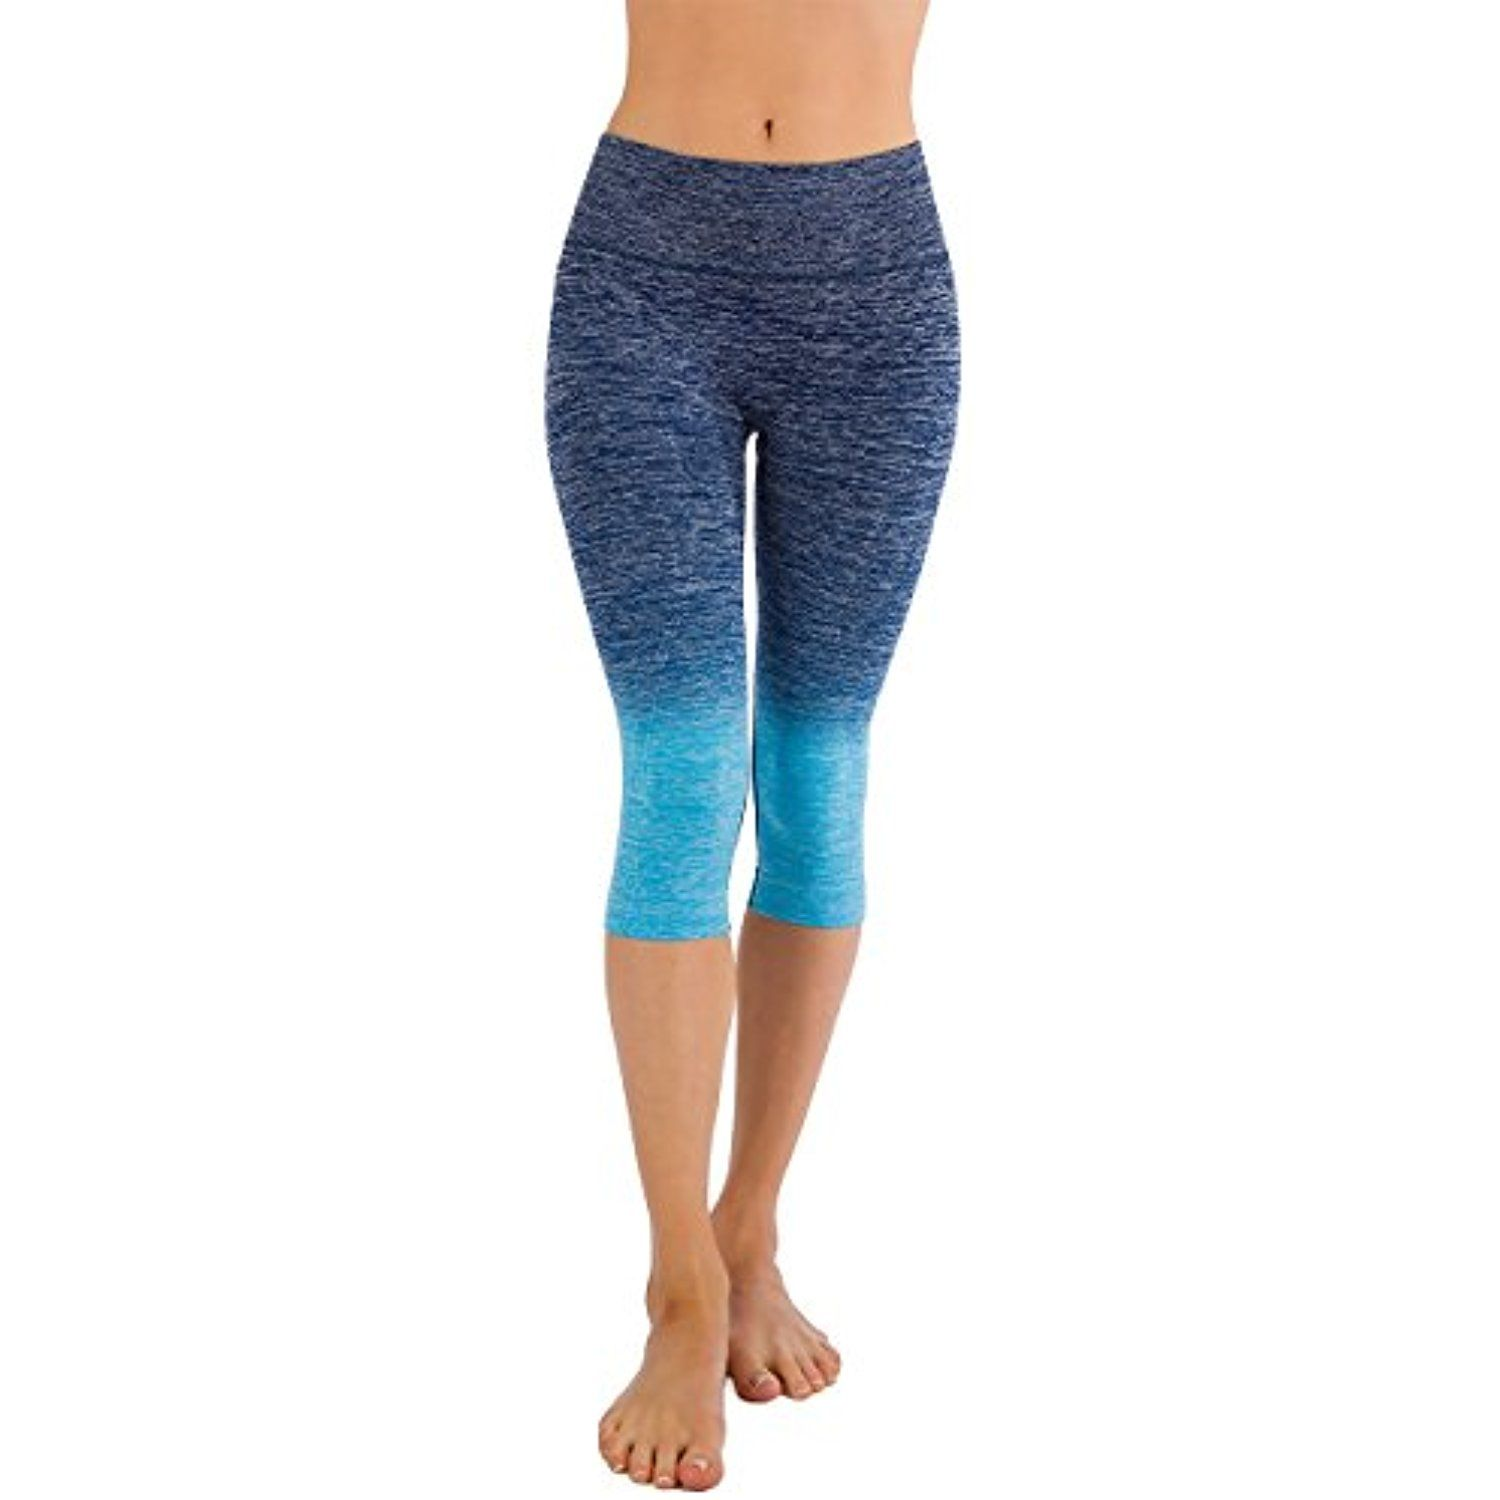 a749715ab7 Homma Women's Premium Ombre Active Workout Cropped Yoga Leggings Running  Pants ** See this great product. (This is an affiliate link) #Pants